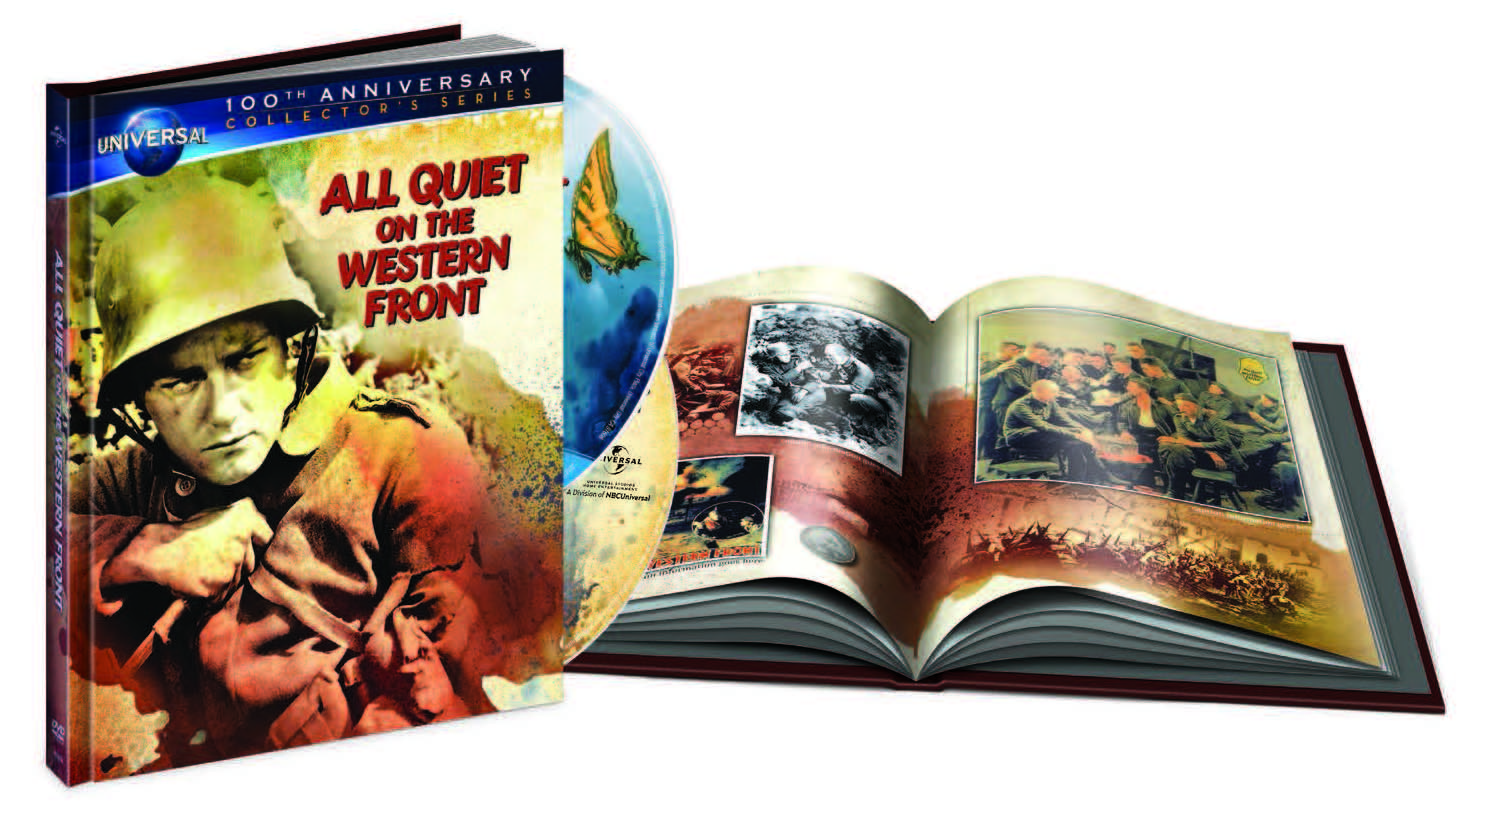 Universal 100th Anniversary Collection Reissues Series - BLU RAY and DVD -  A List For 2012.